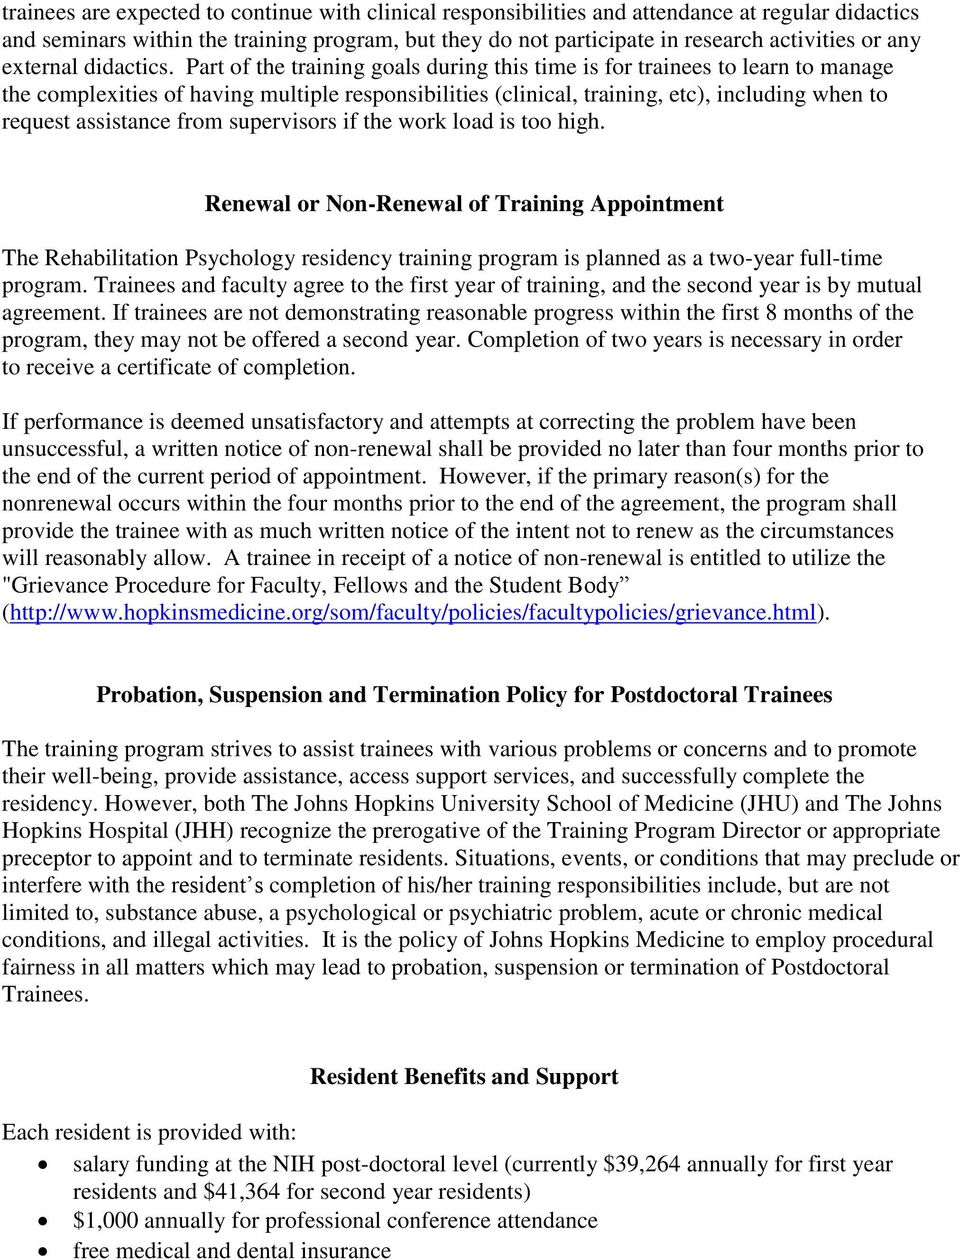 Part of the training goals during this time is for trainees to learn to manage the complexities of having multiple responsibilities (clinical, training, etc), including when to request assistance